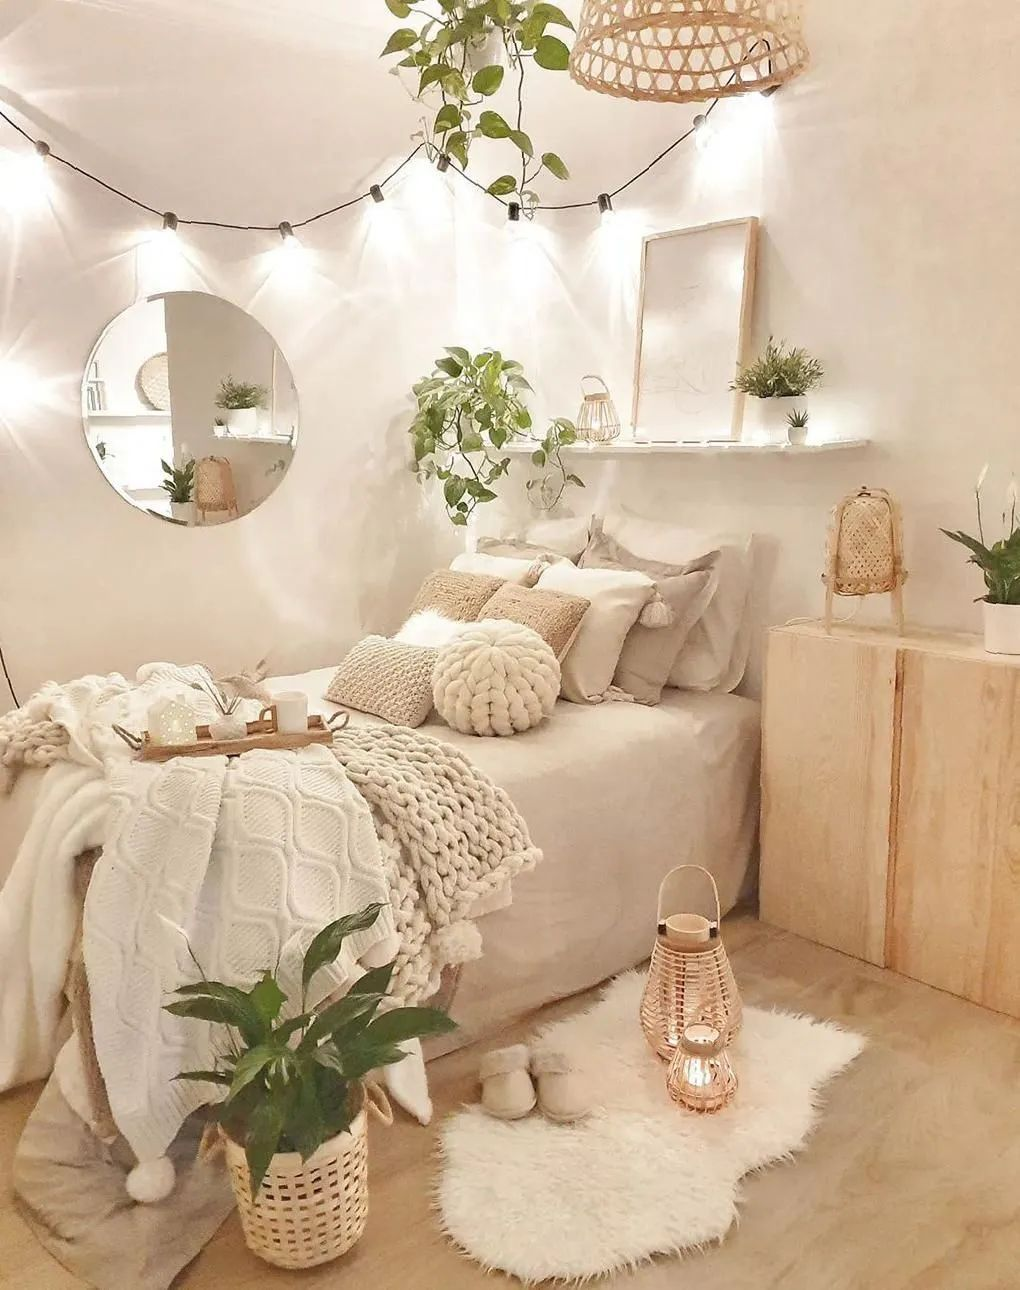 I Wanna Have Such Wonderful Bedroom Room To Fulfill My Utopia Latest Fashion Trends For Woman Room Inspiration Bedroom Cozy Room Redecorate Bedroom